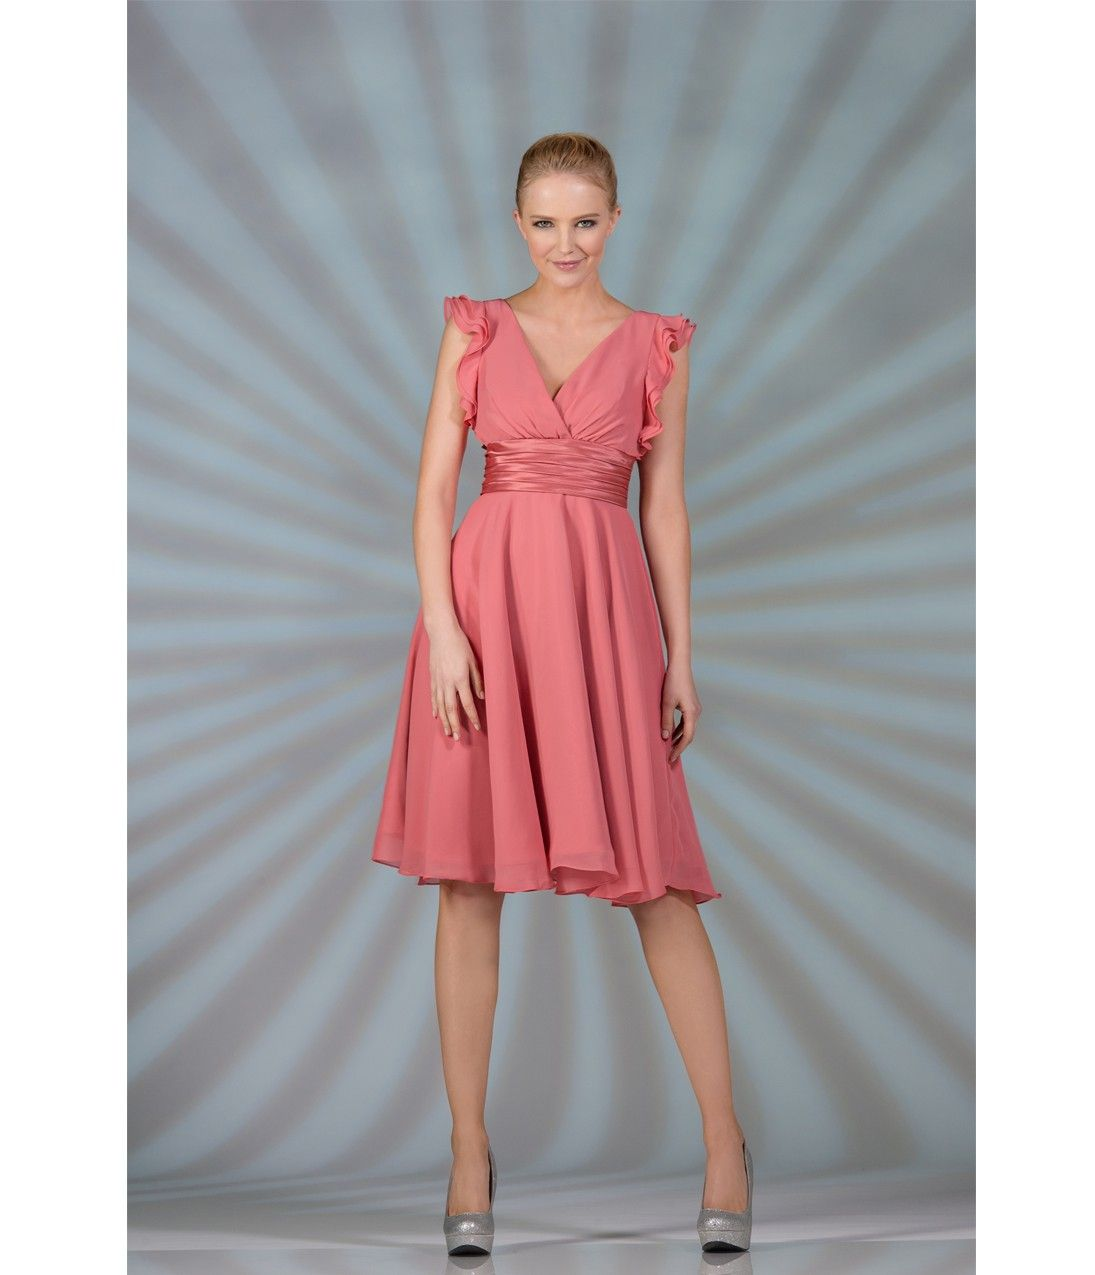 ruby red bridesmaid dresses neutral colors | Top 50 Ruby-Red ...